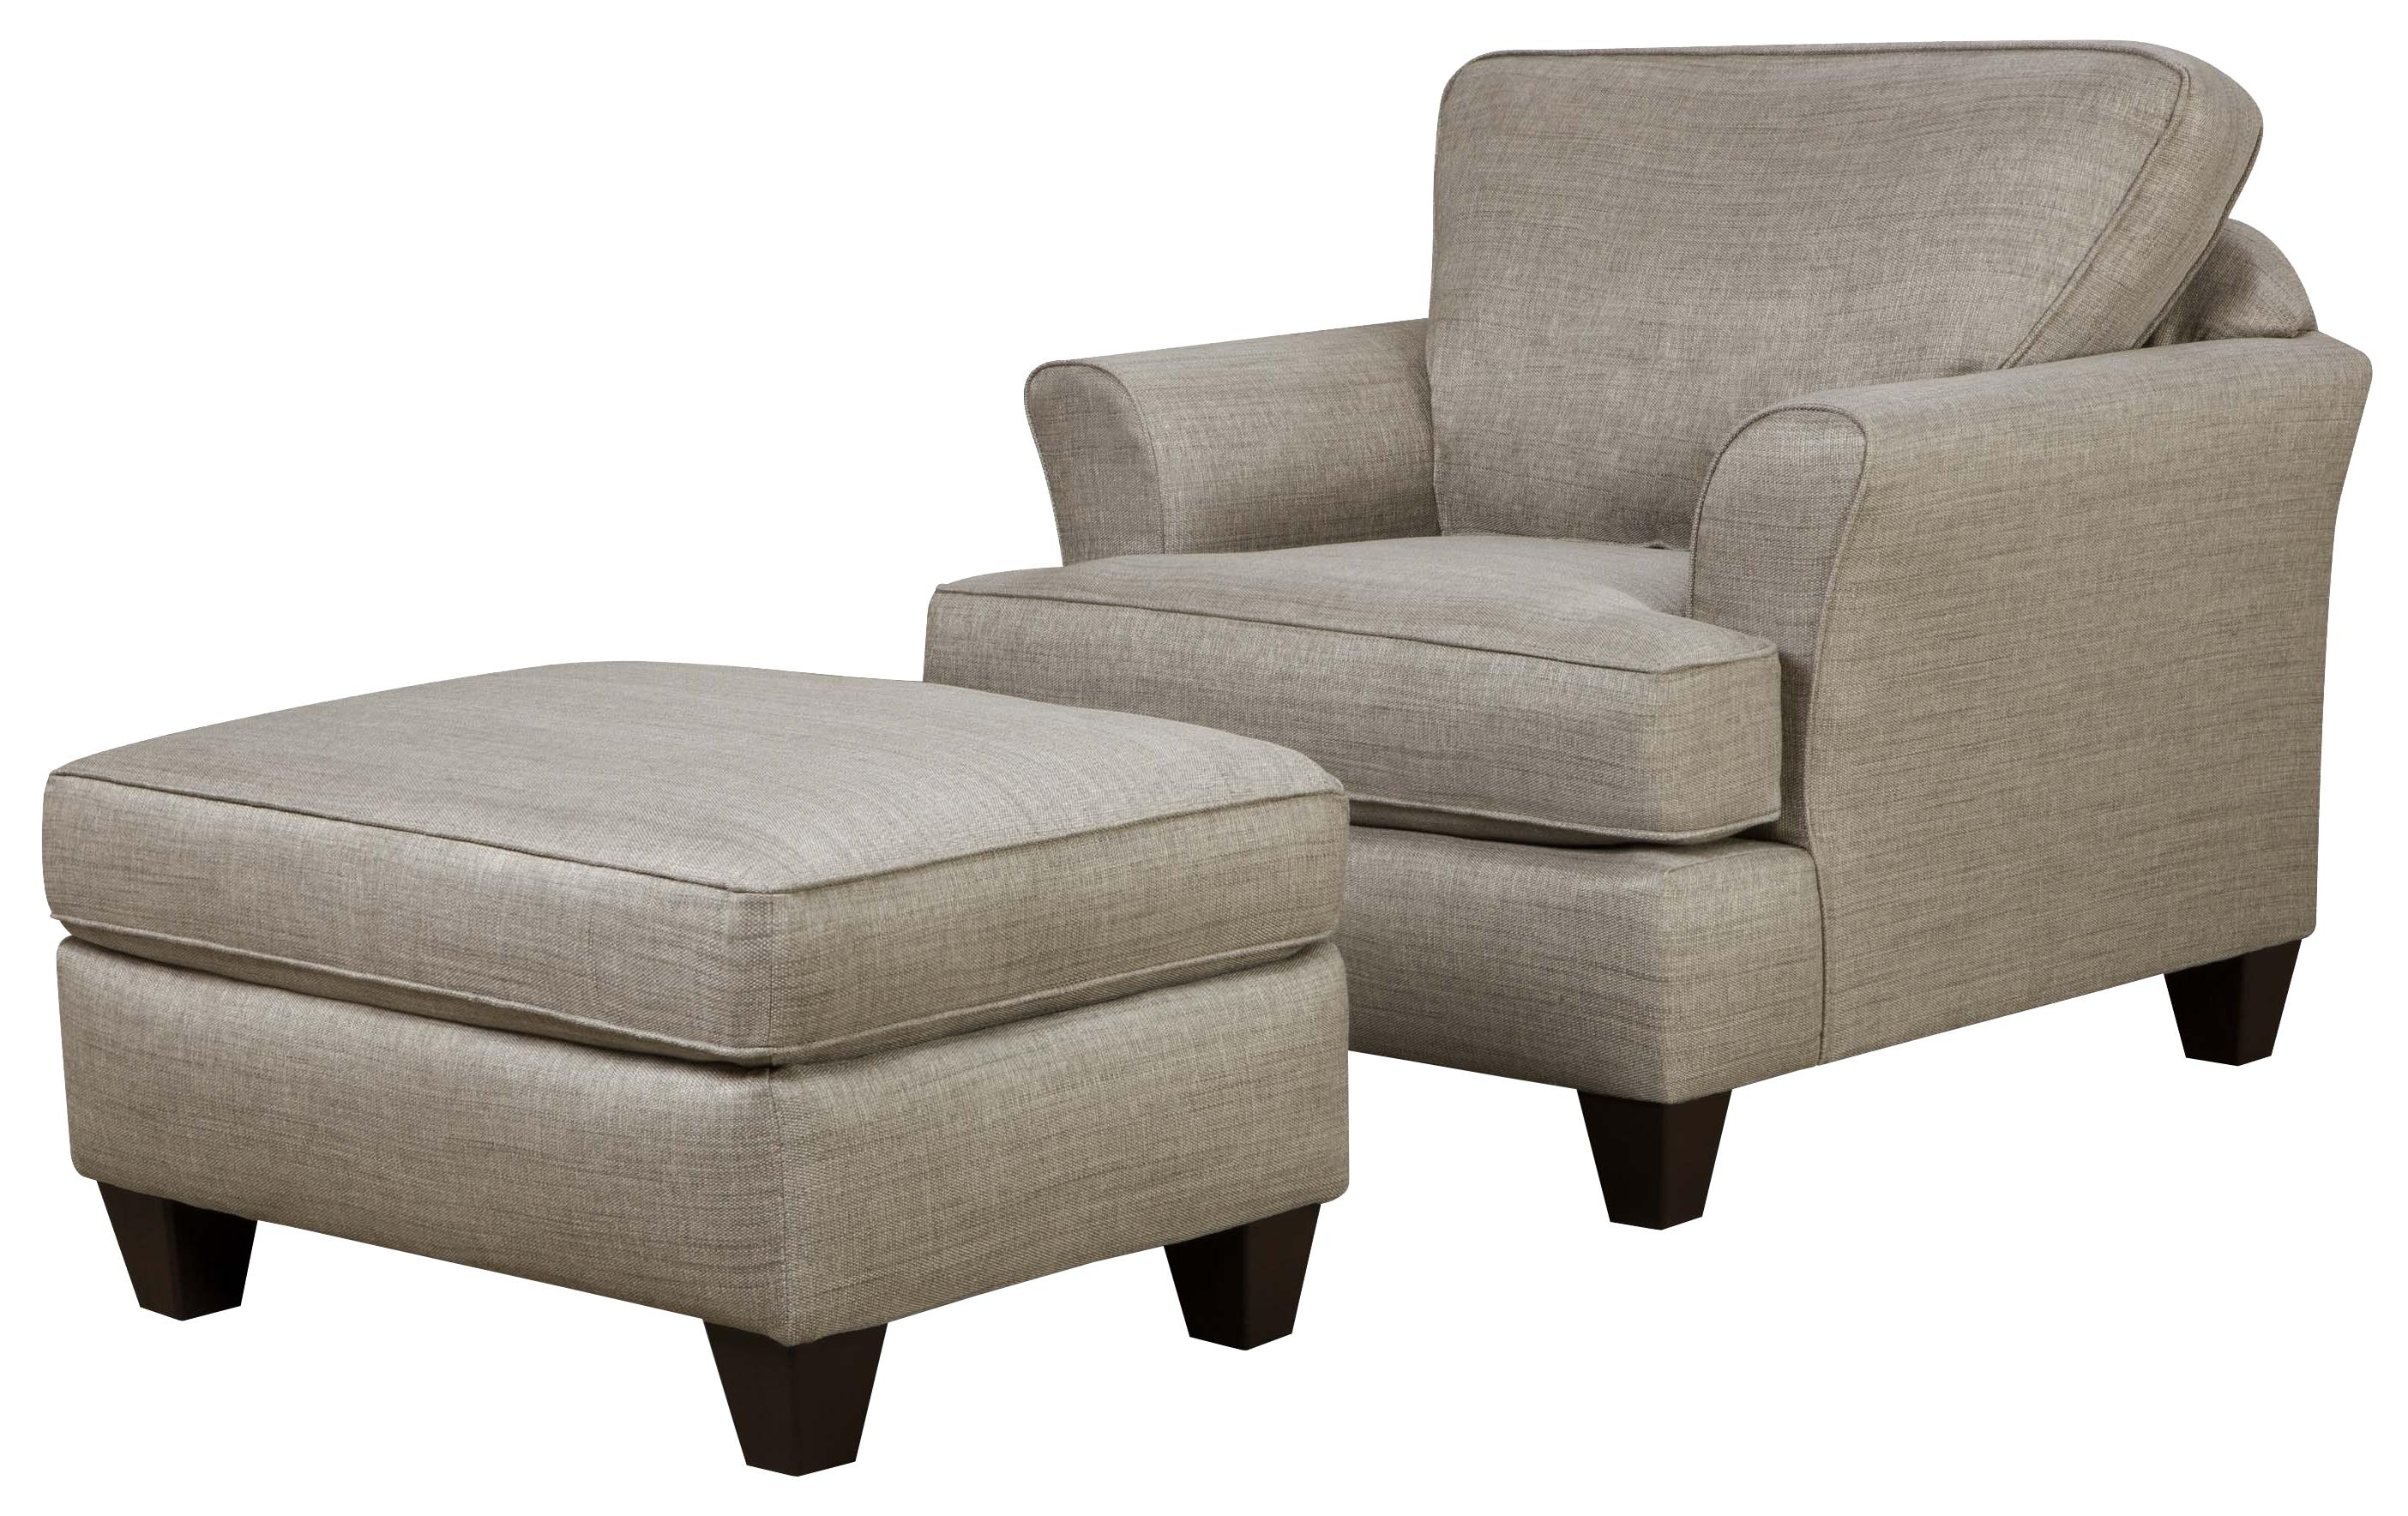 Preferred Chairs With Ottoman In Fantastic Reading Chair And Ottoman On Mid Century Modern Chair (View 4 of 20)